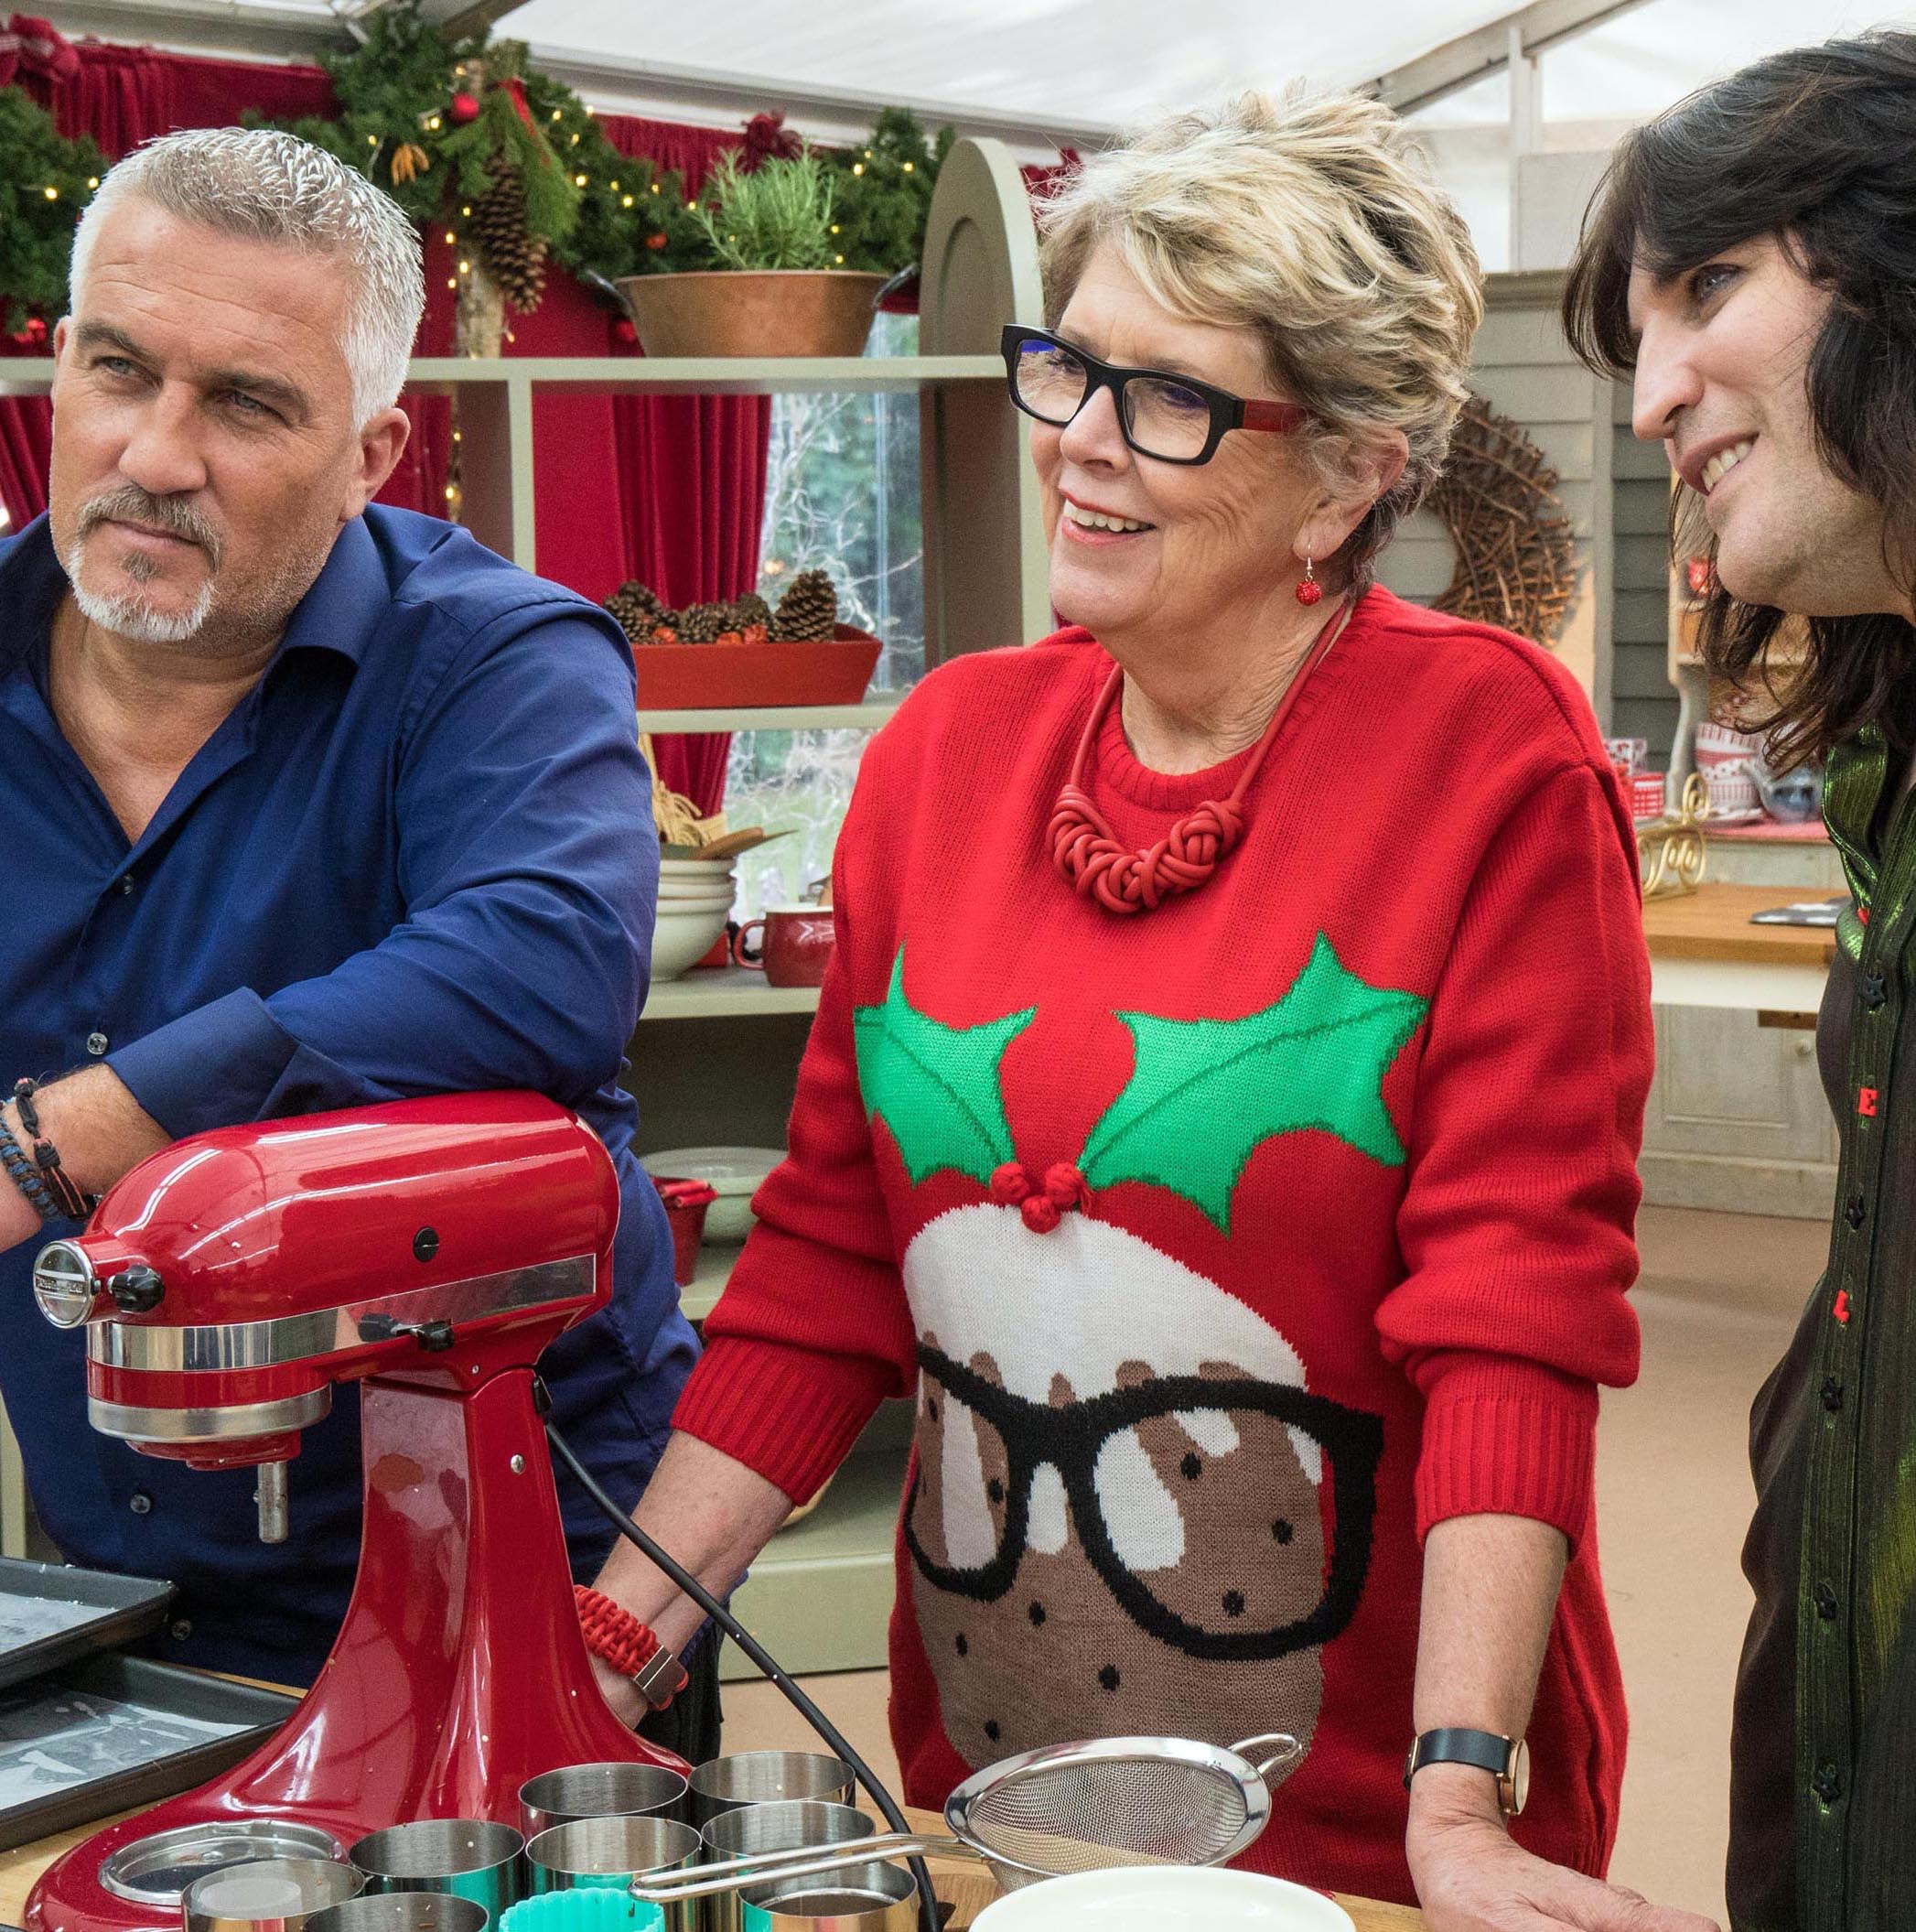 ChristmasBakeOff5 04dee42 26 Things You Didn't Know About Bake Off's Prue Leith